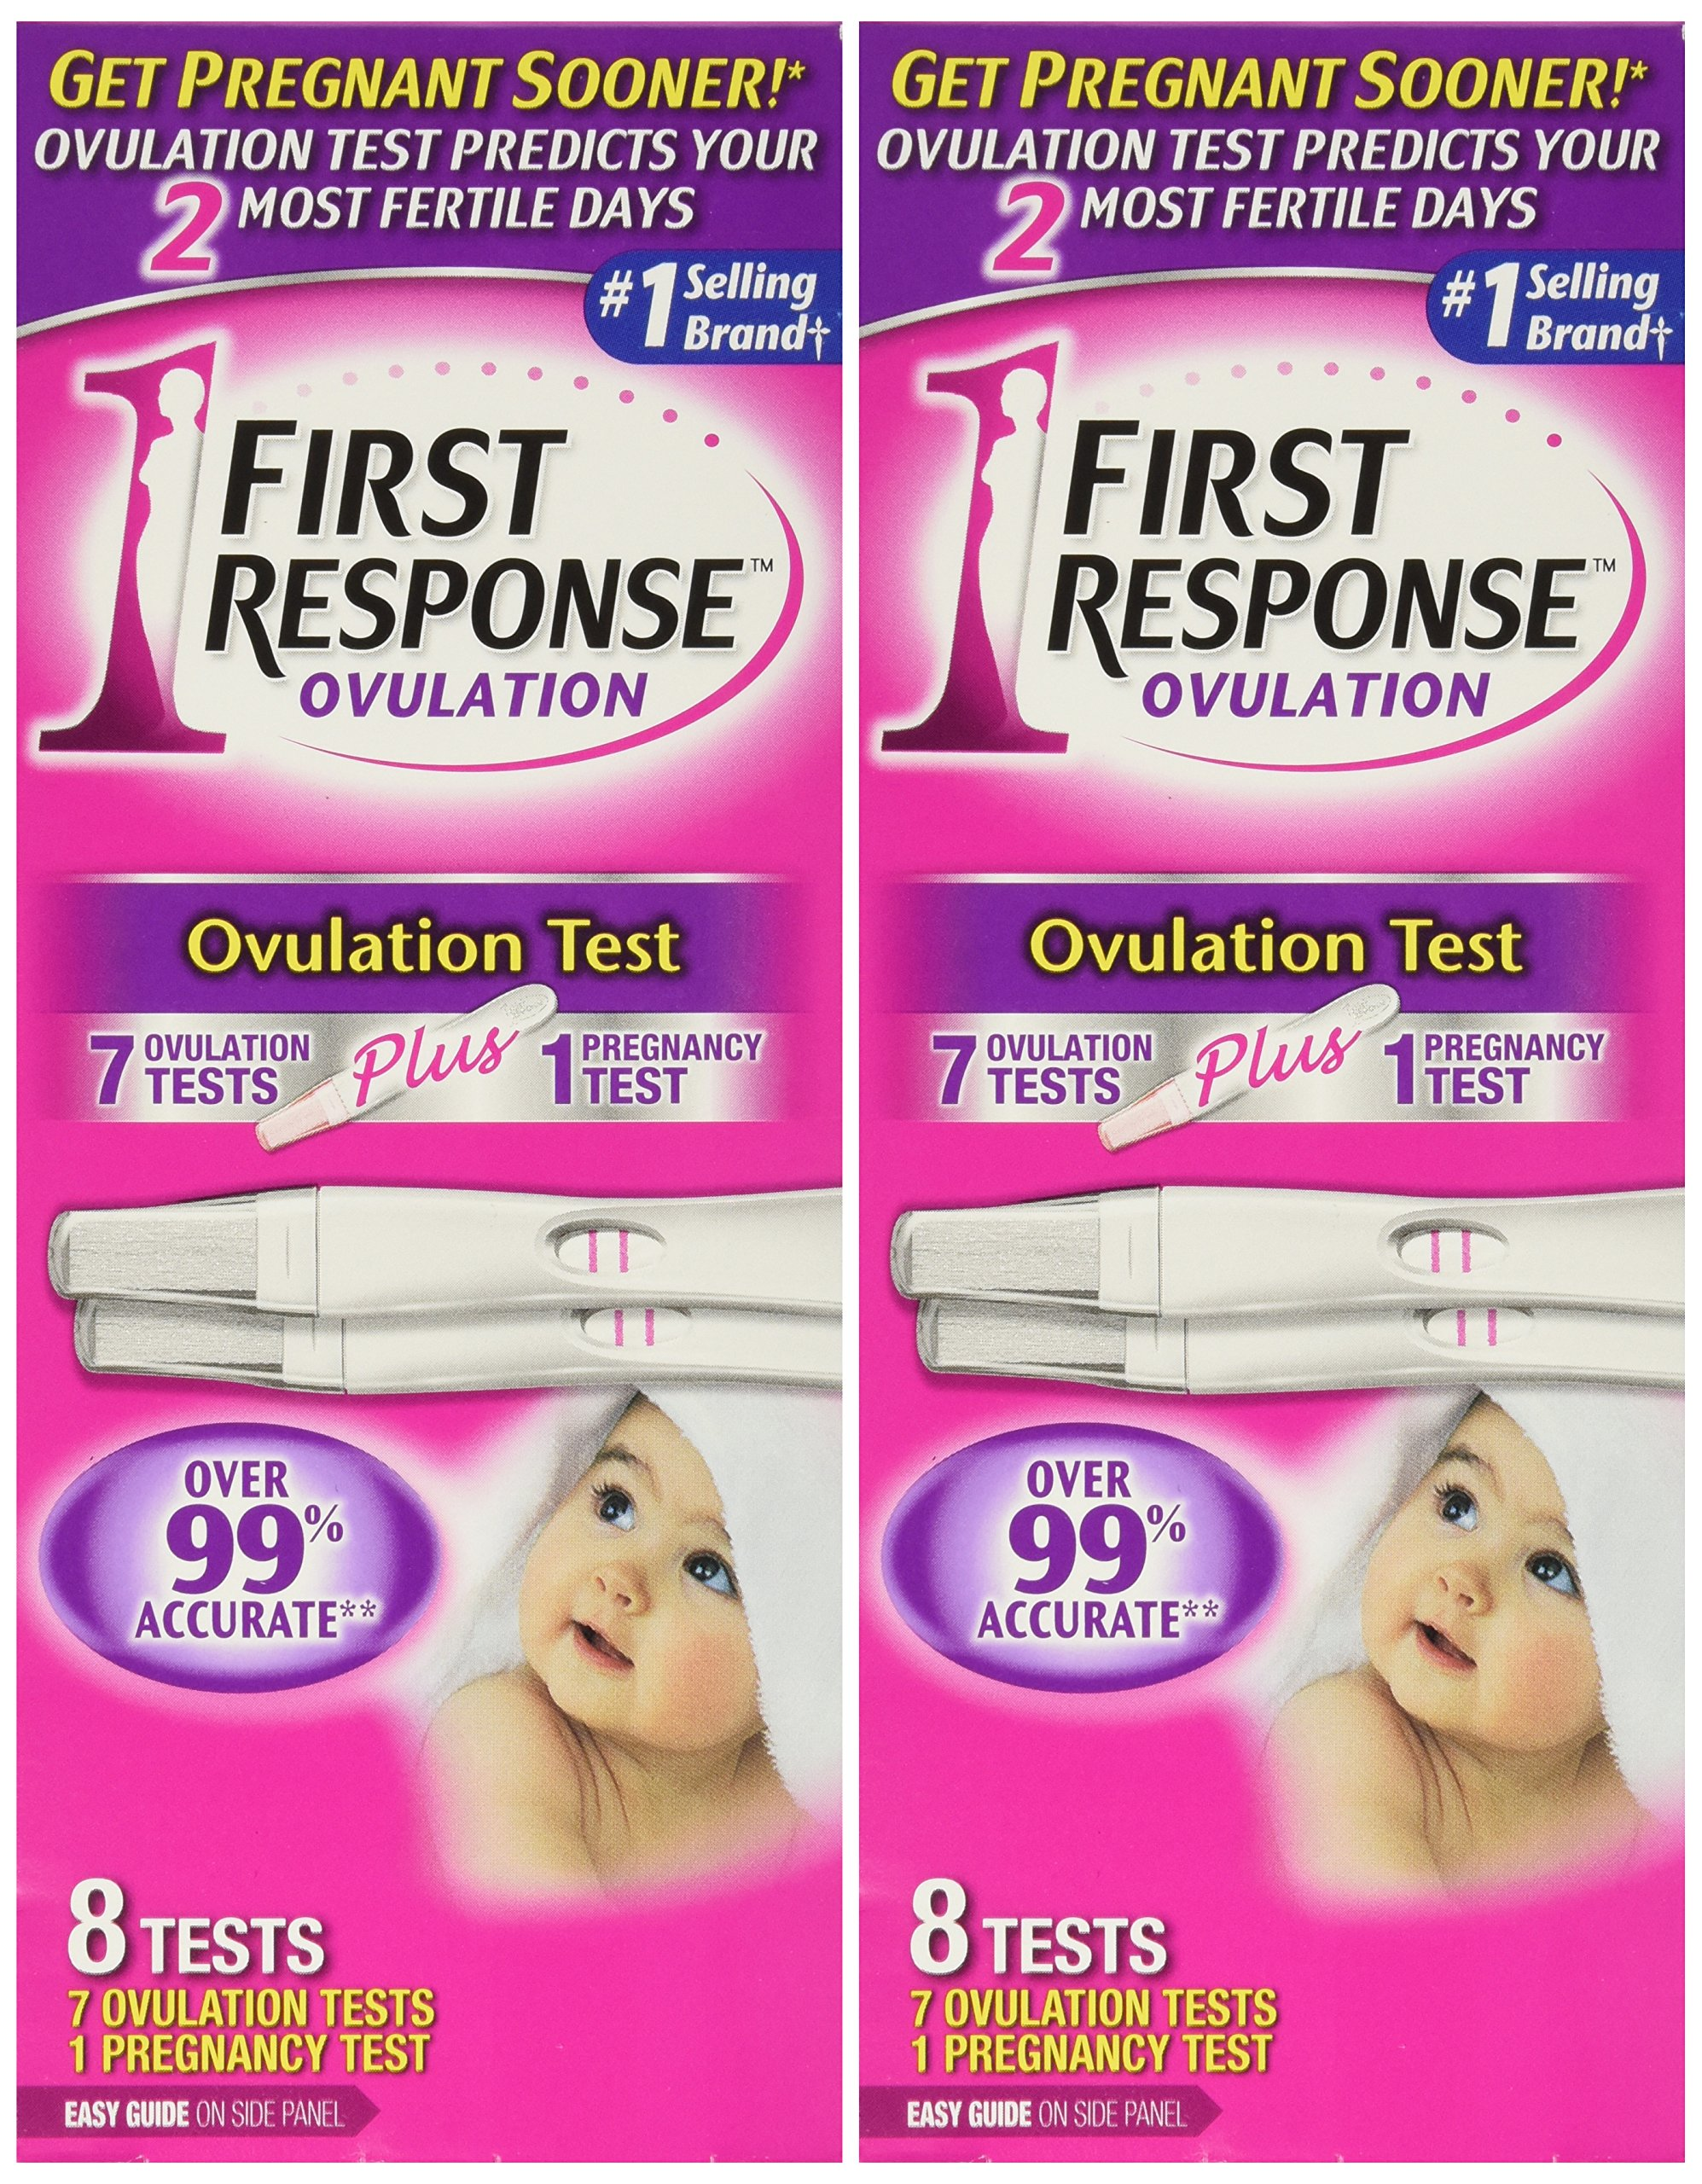 First Response Ovulation 7 Ovulation Test Plus 1 Pregnancy Test (2 Pack) by First Response